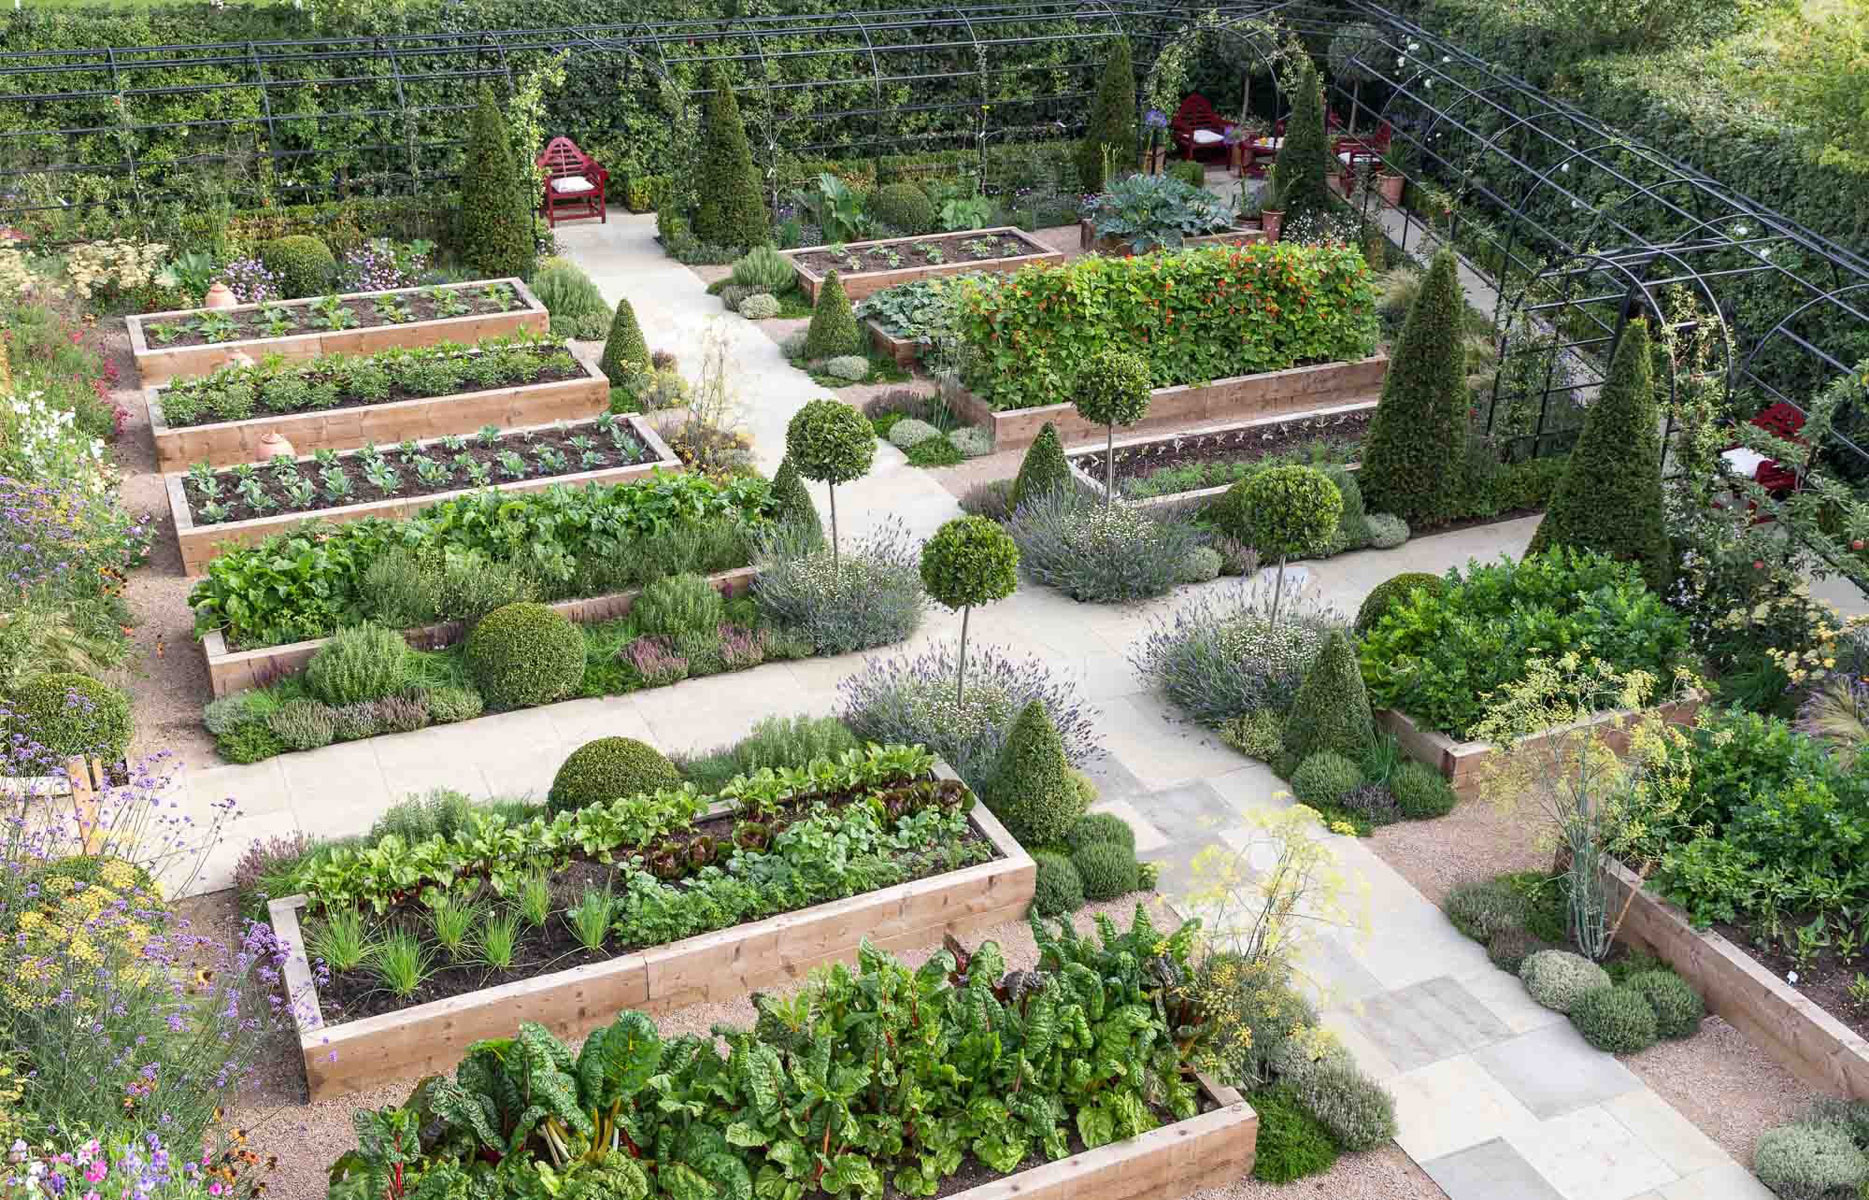 Kitchen garden garden design landscaping project for Garden design and landscaping